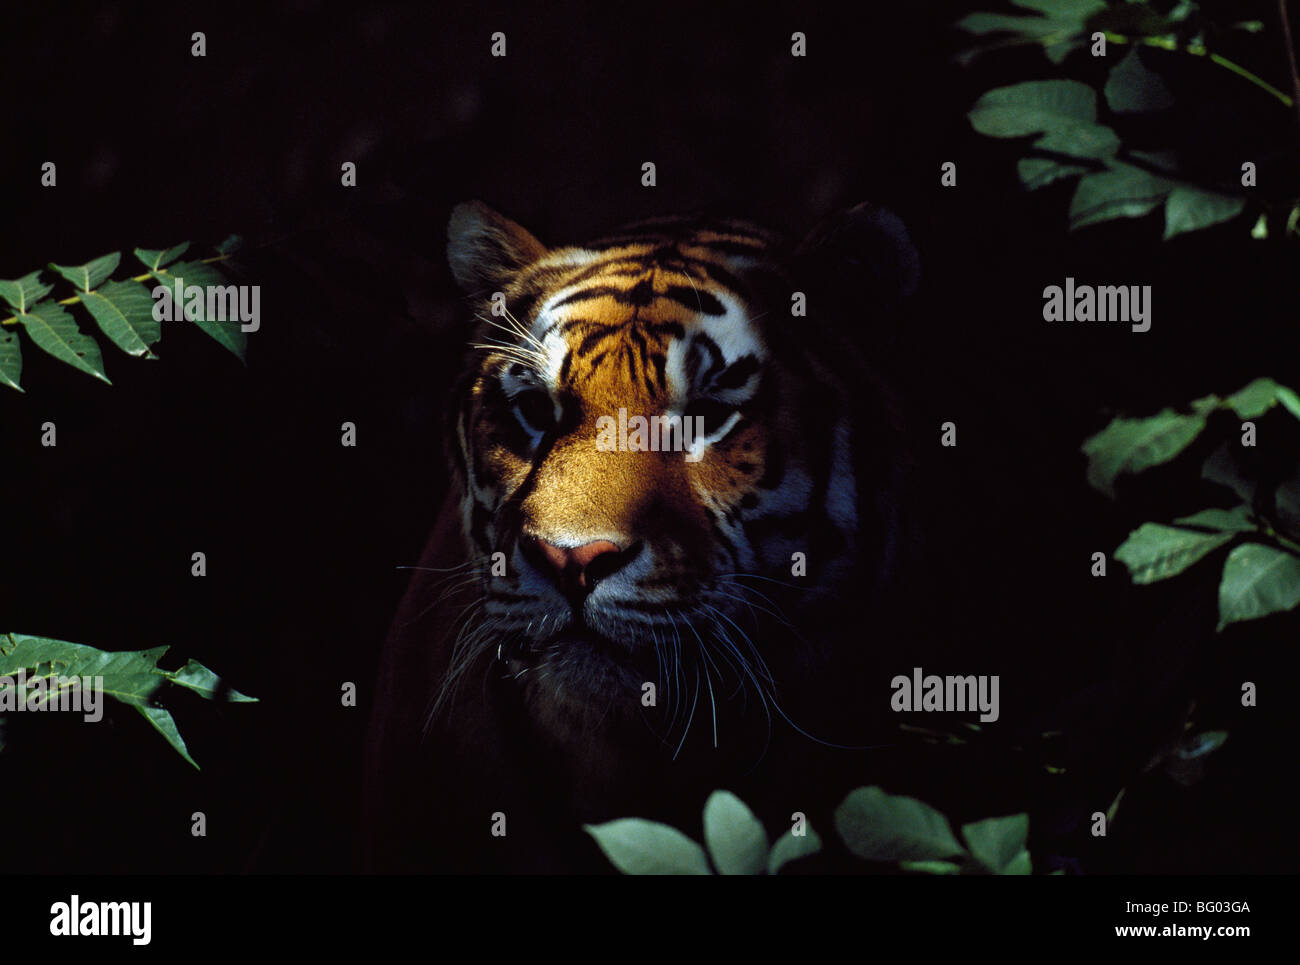 Siberian tiger (Panthera tigris altaica) peers from forest shadows - Stock Image